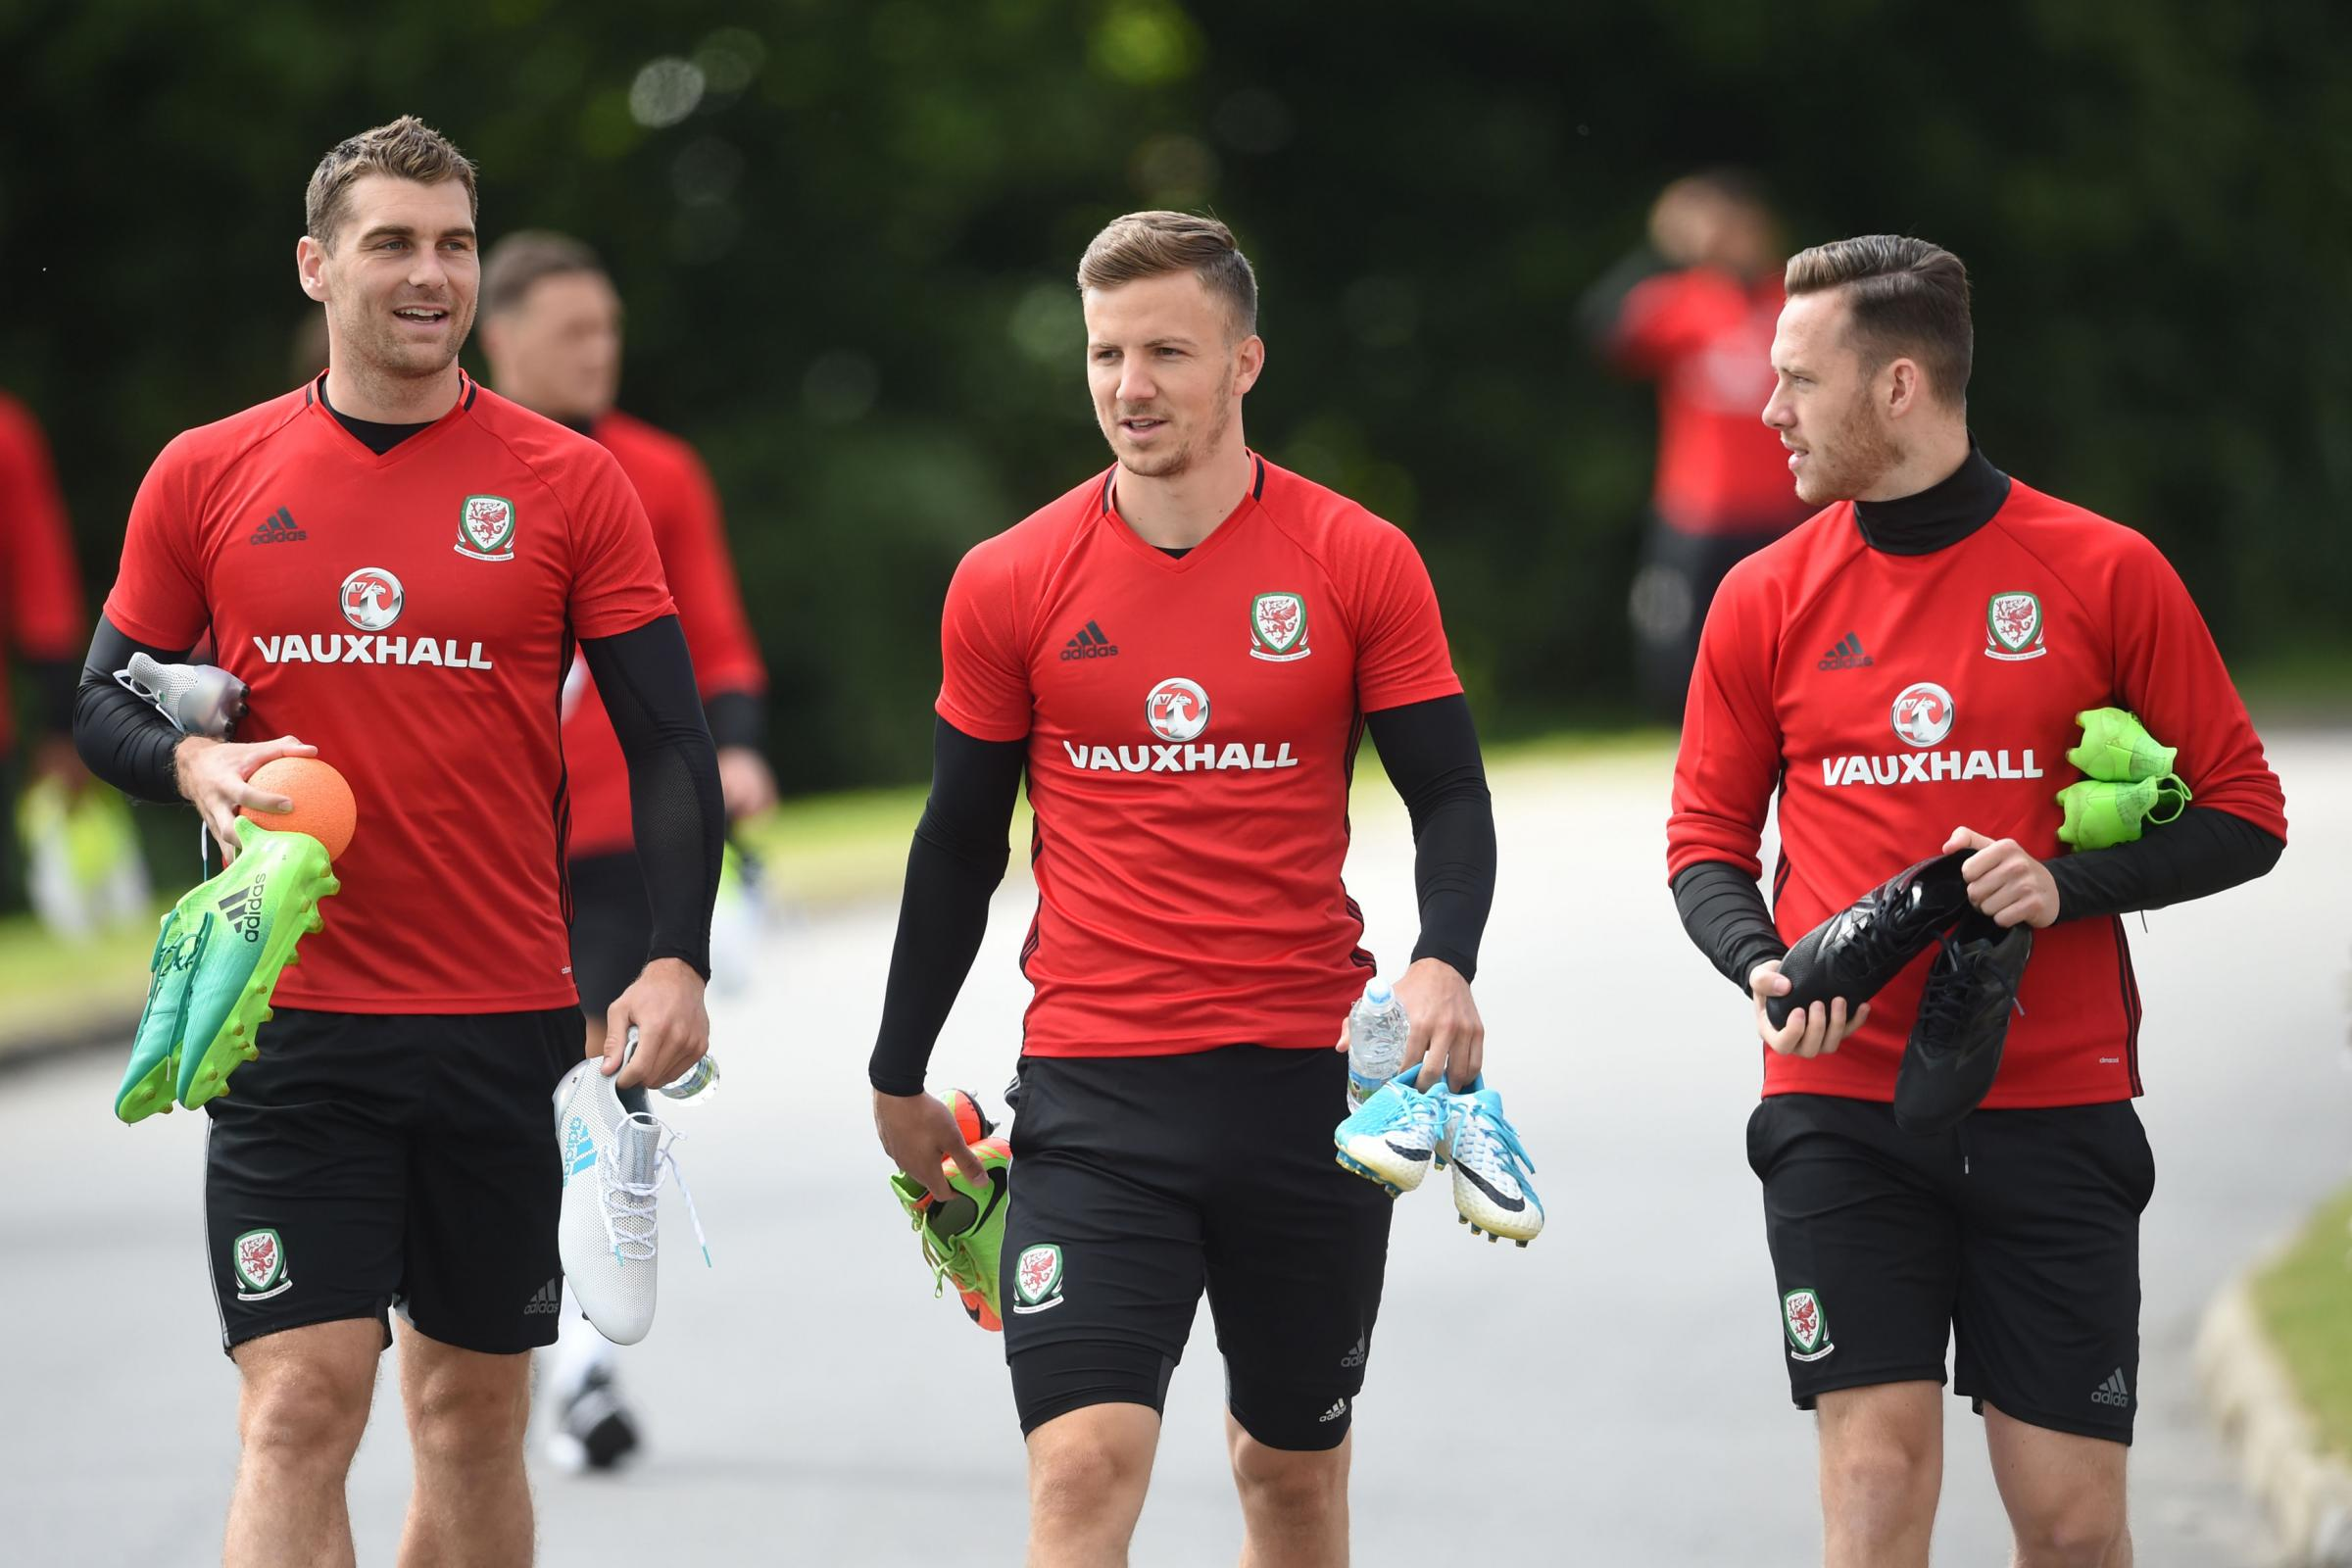 NATIONAL SERVICE: Former Newport County star Lee Evans, centre, with Wales teammates Sam Vokes, left, and Gethin Jones, right